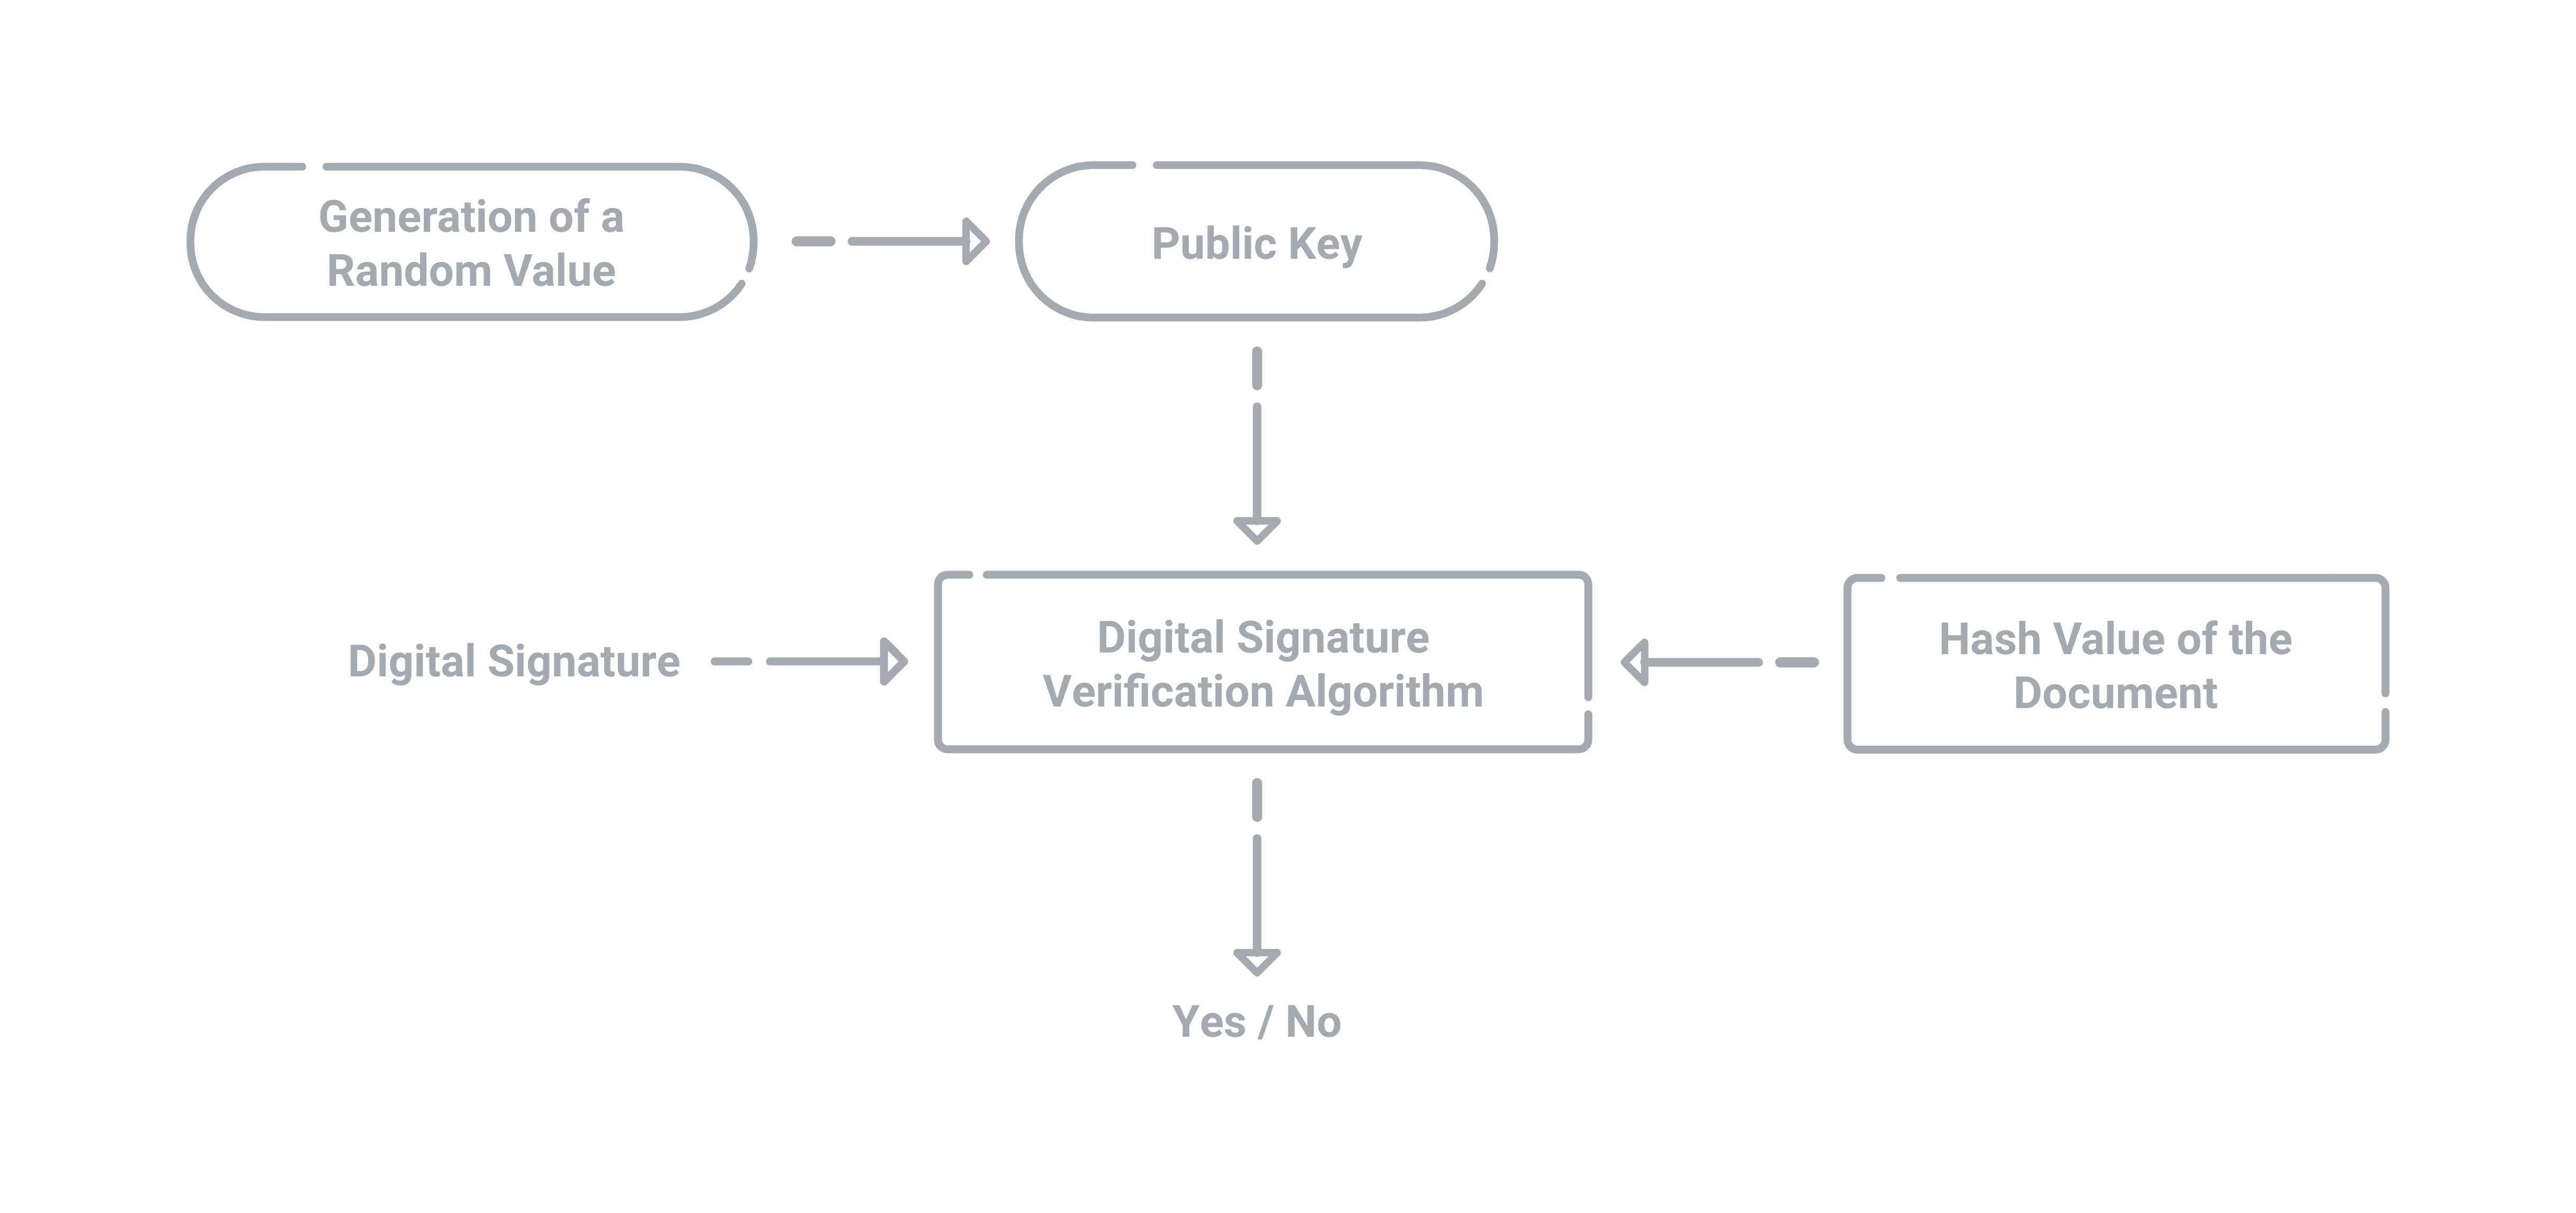 The process for verifying the validity of the digital signature